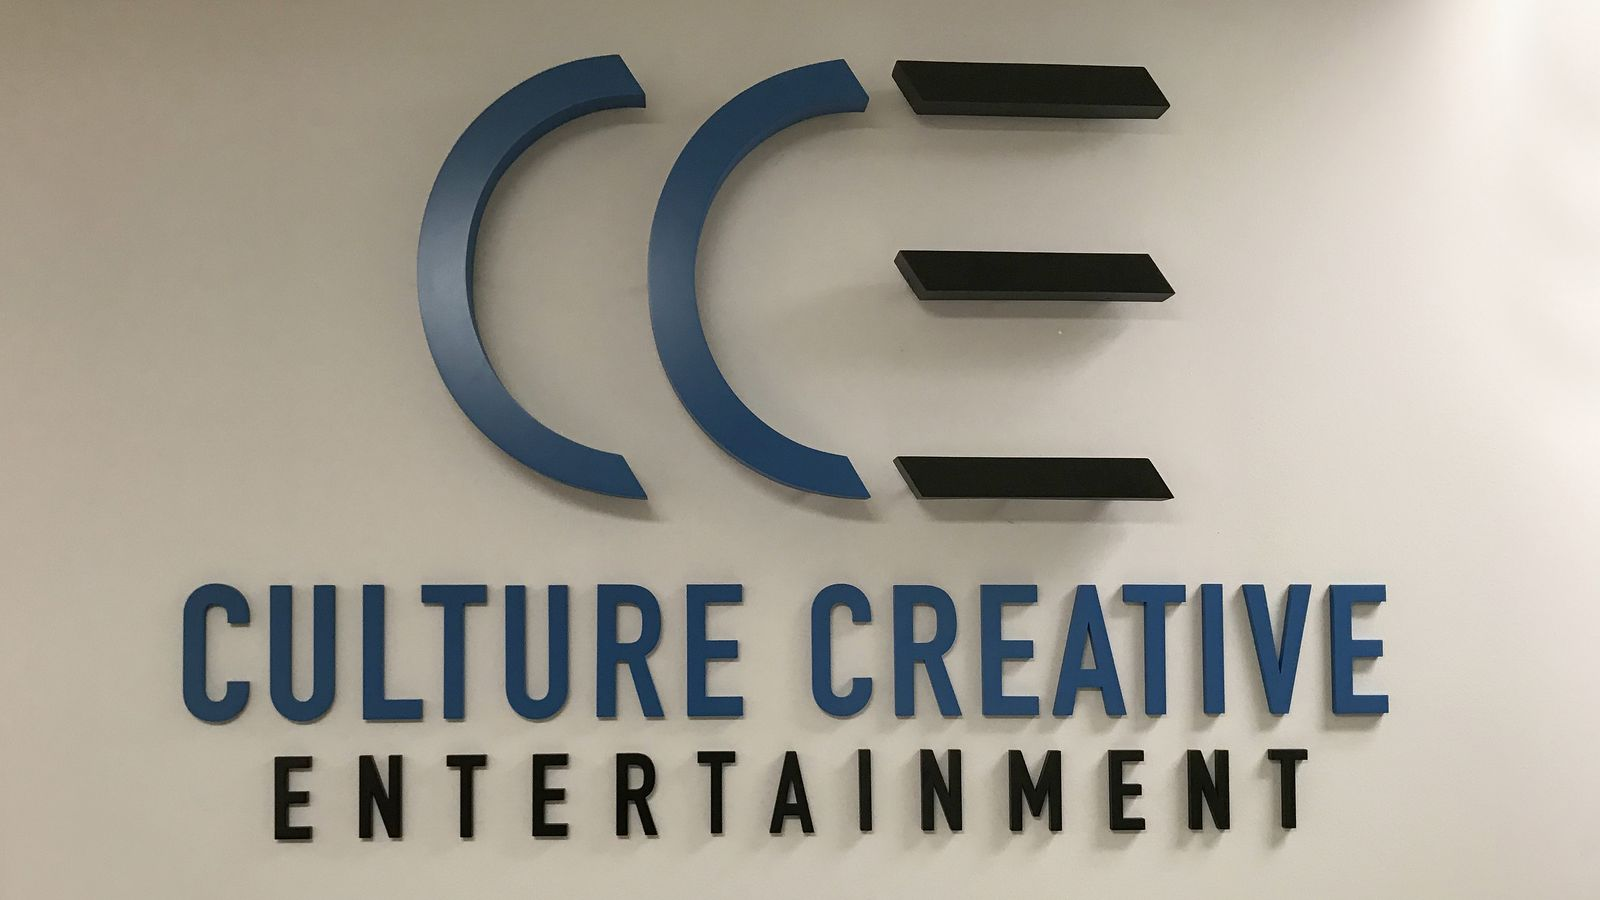 Culture Creative Entertainment backlit 3d sign letters painted made of aluminum and acrylic for office interior branding